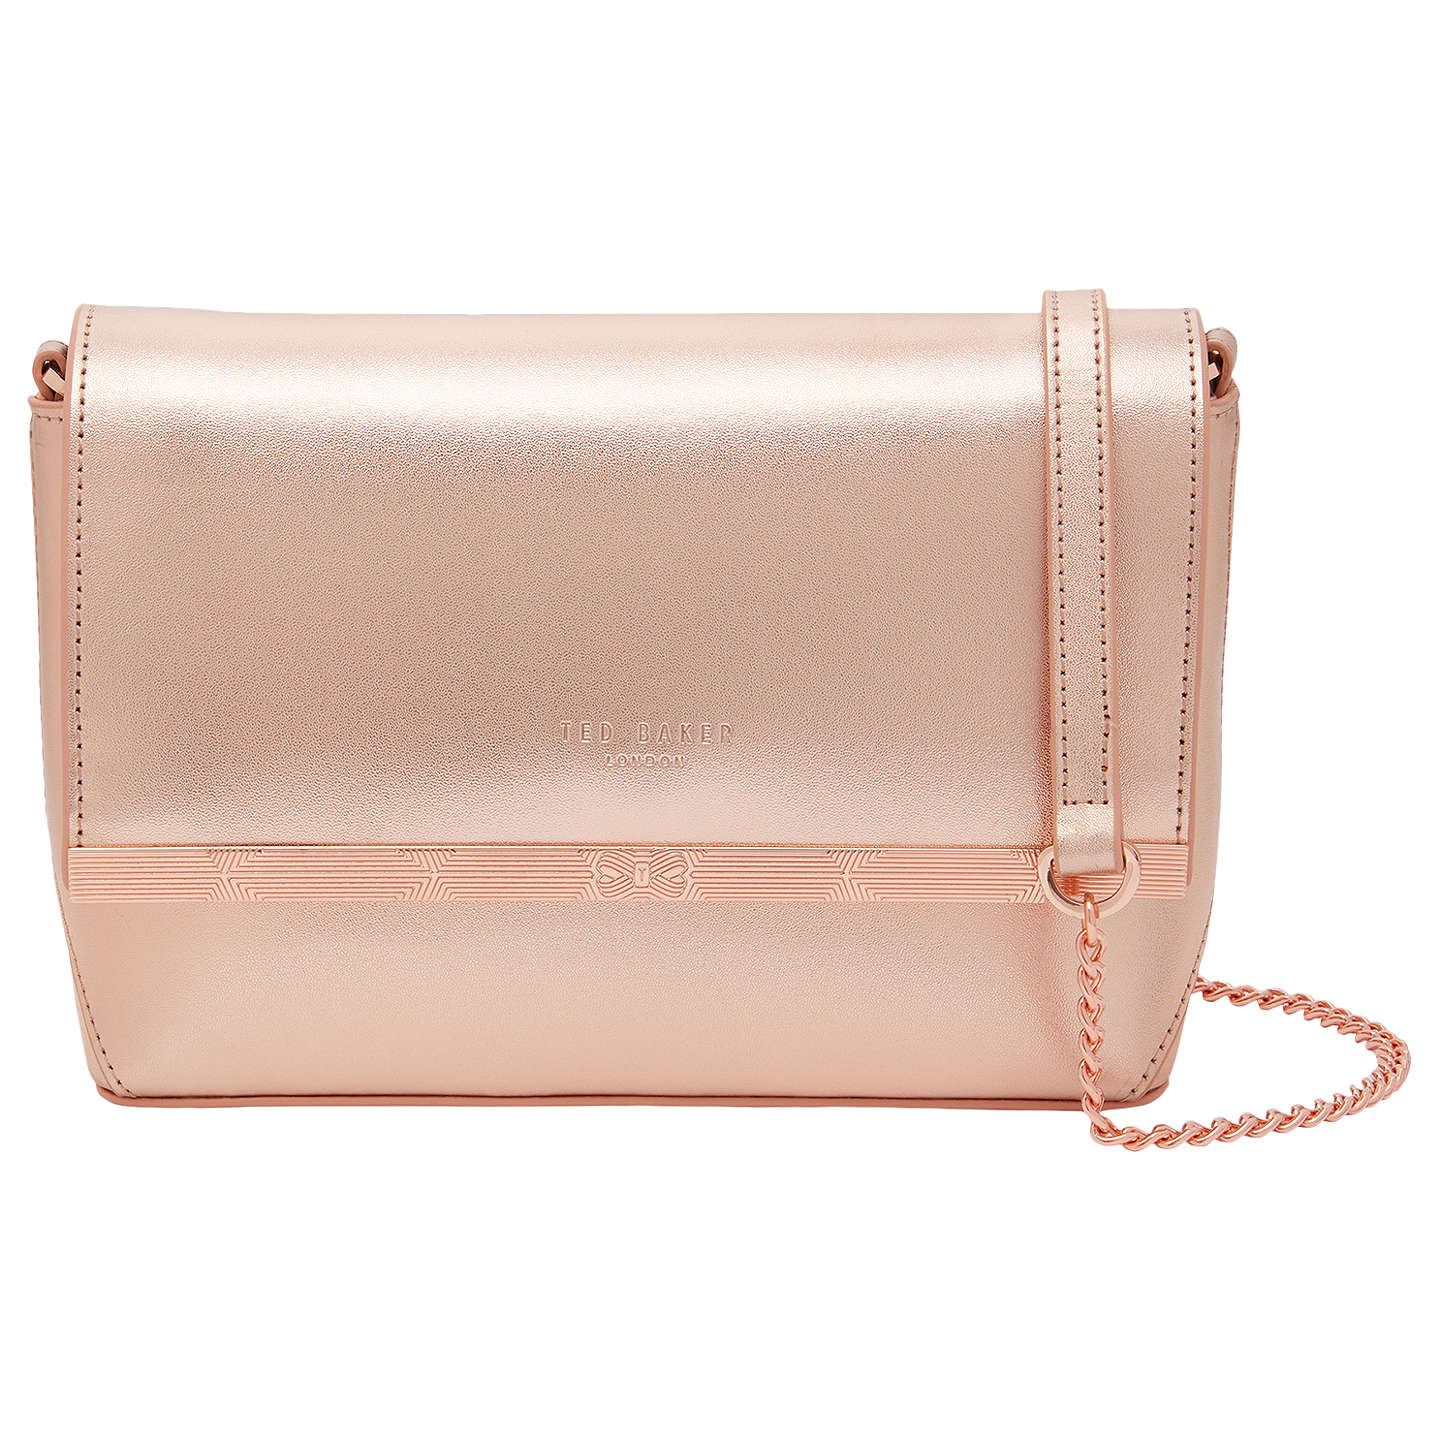 Ted Baker Melisaa Leather Cross Body Bag Rose Gold Online At Johnlewis